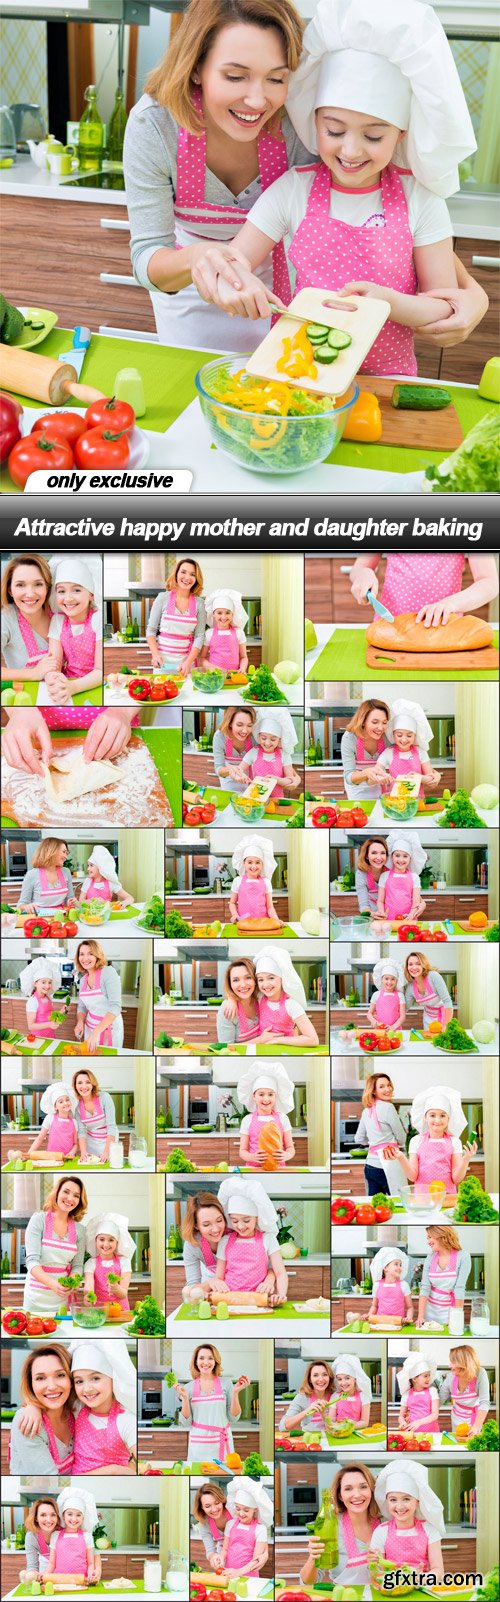 Attractive happy mother and daughter baking - 25 UHQ JPEG